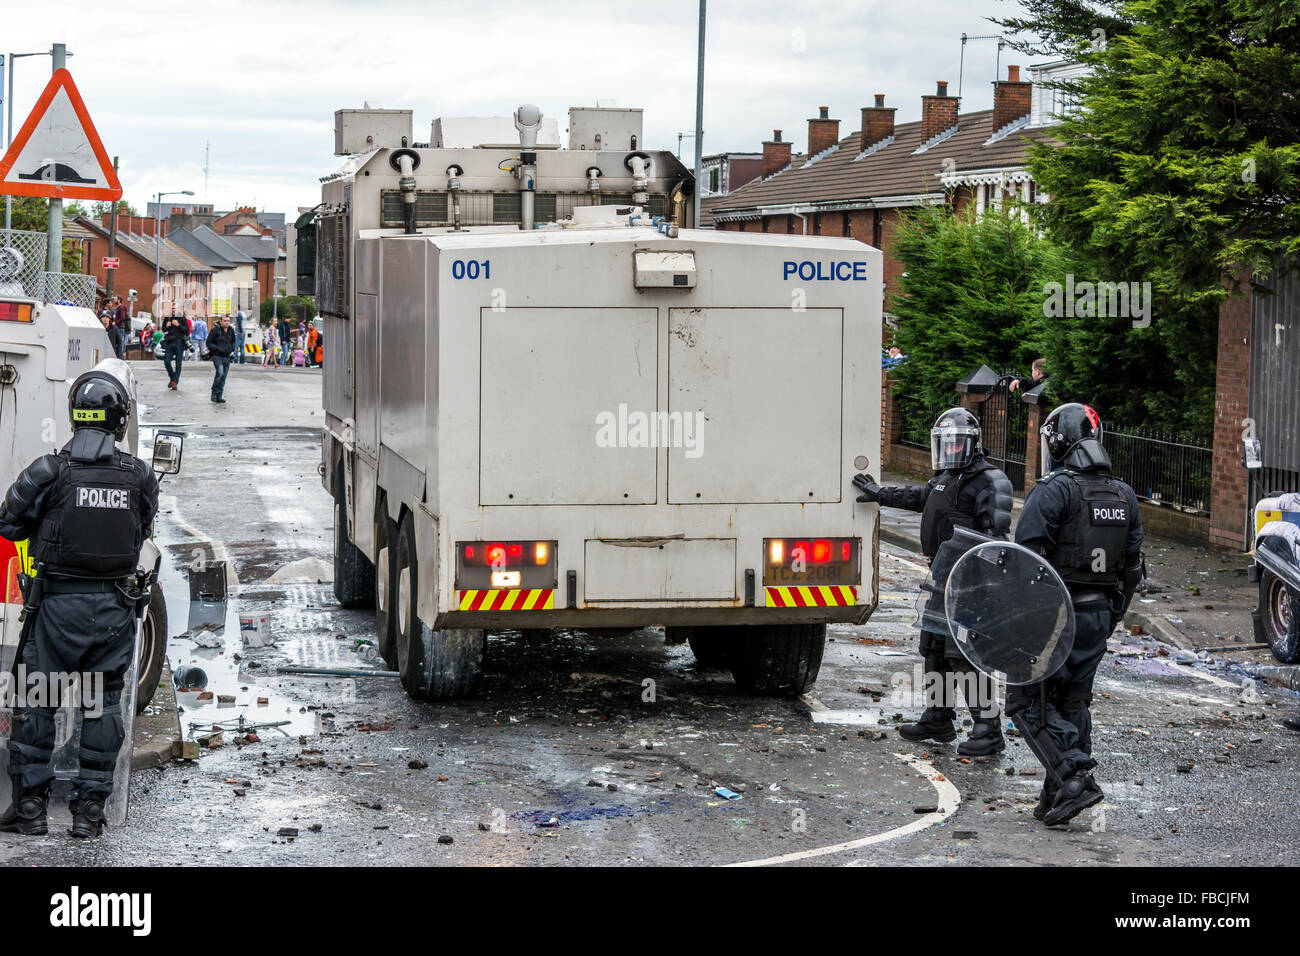 PSNI water cannon being deployed during Irish Republican riot in Belfast - Stock Image